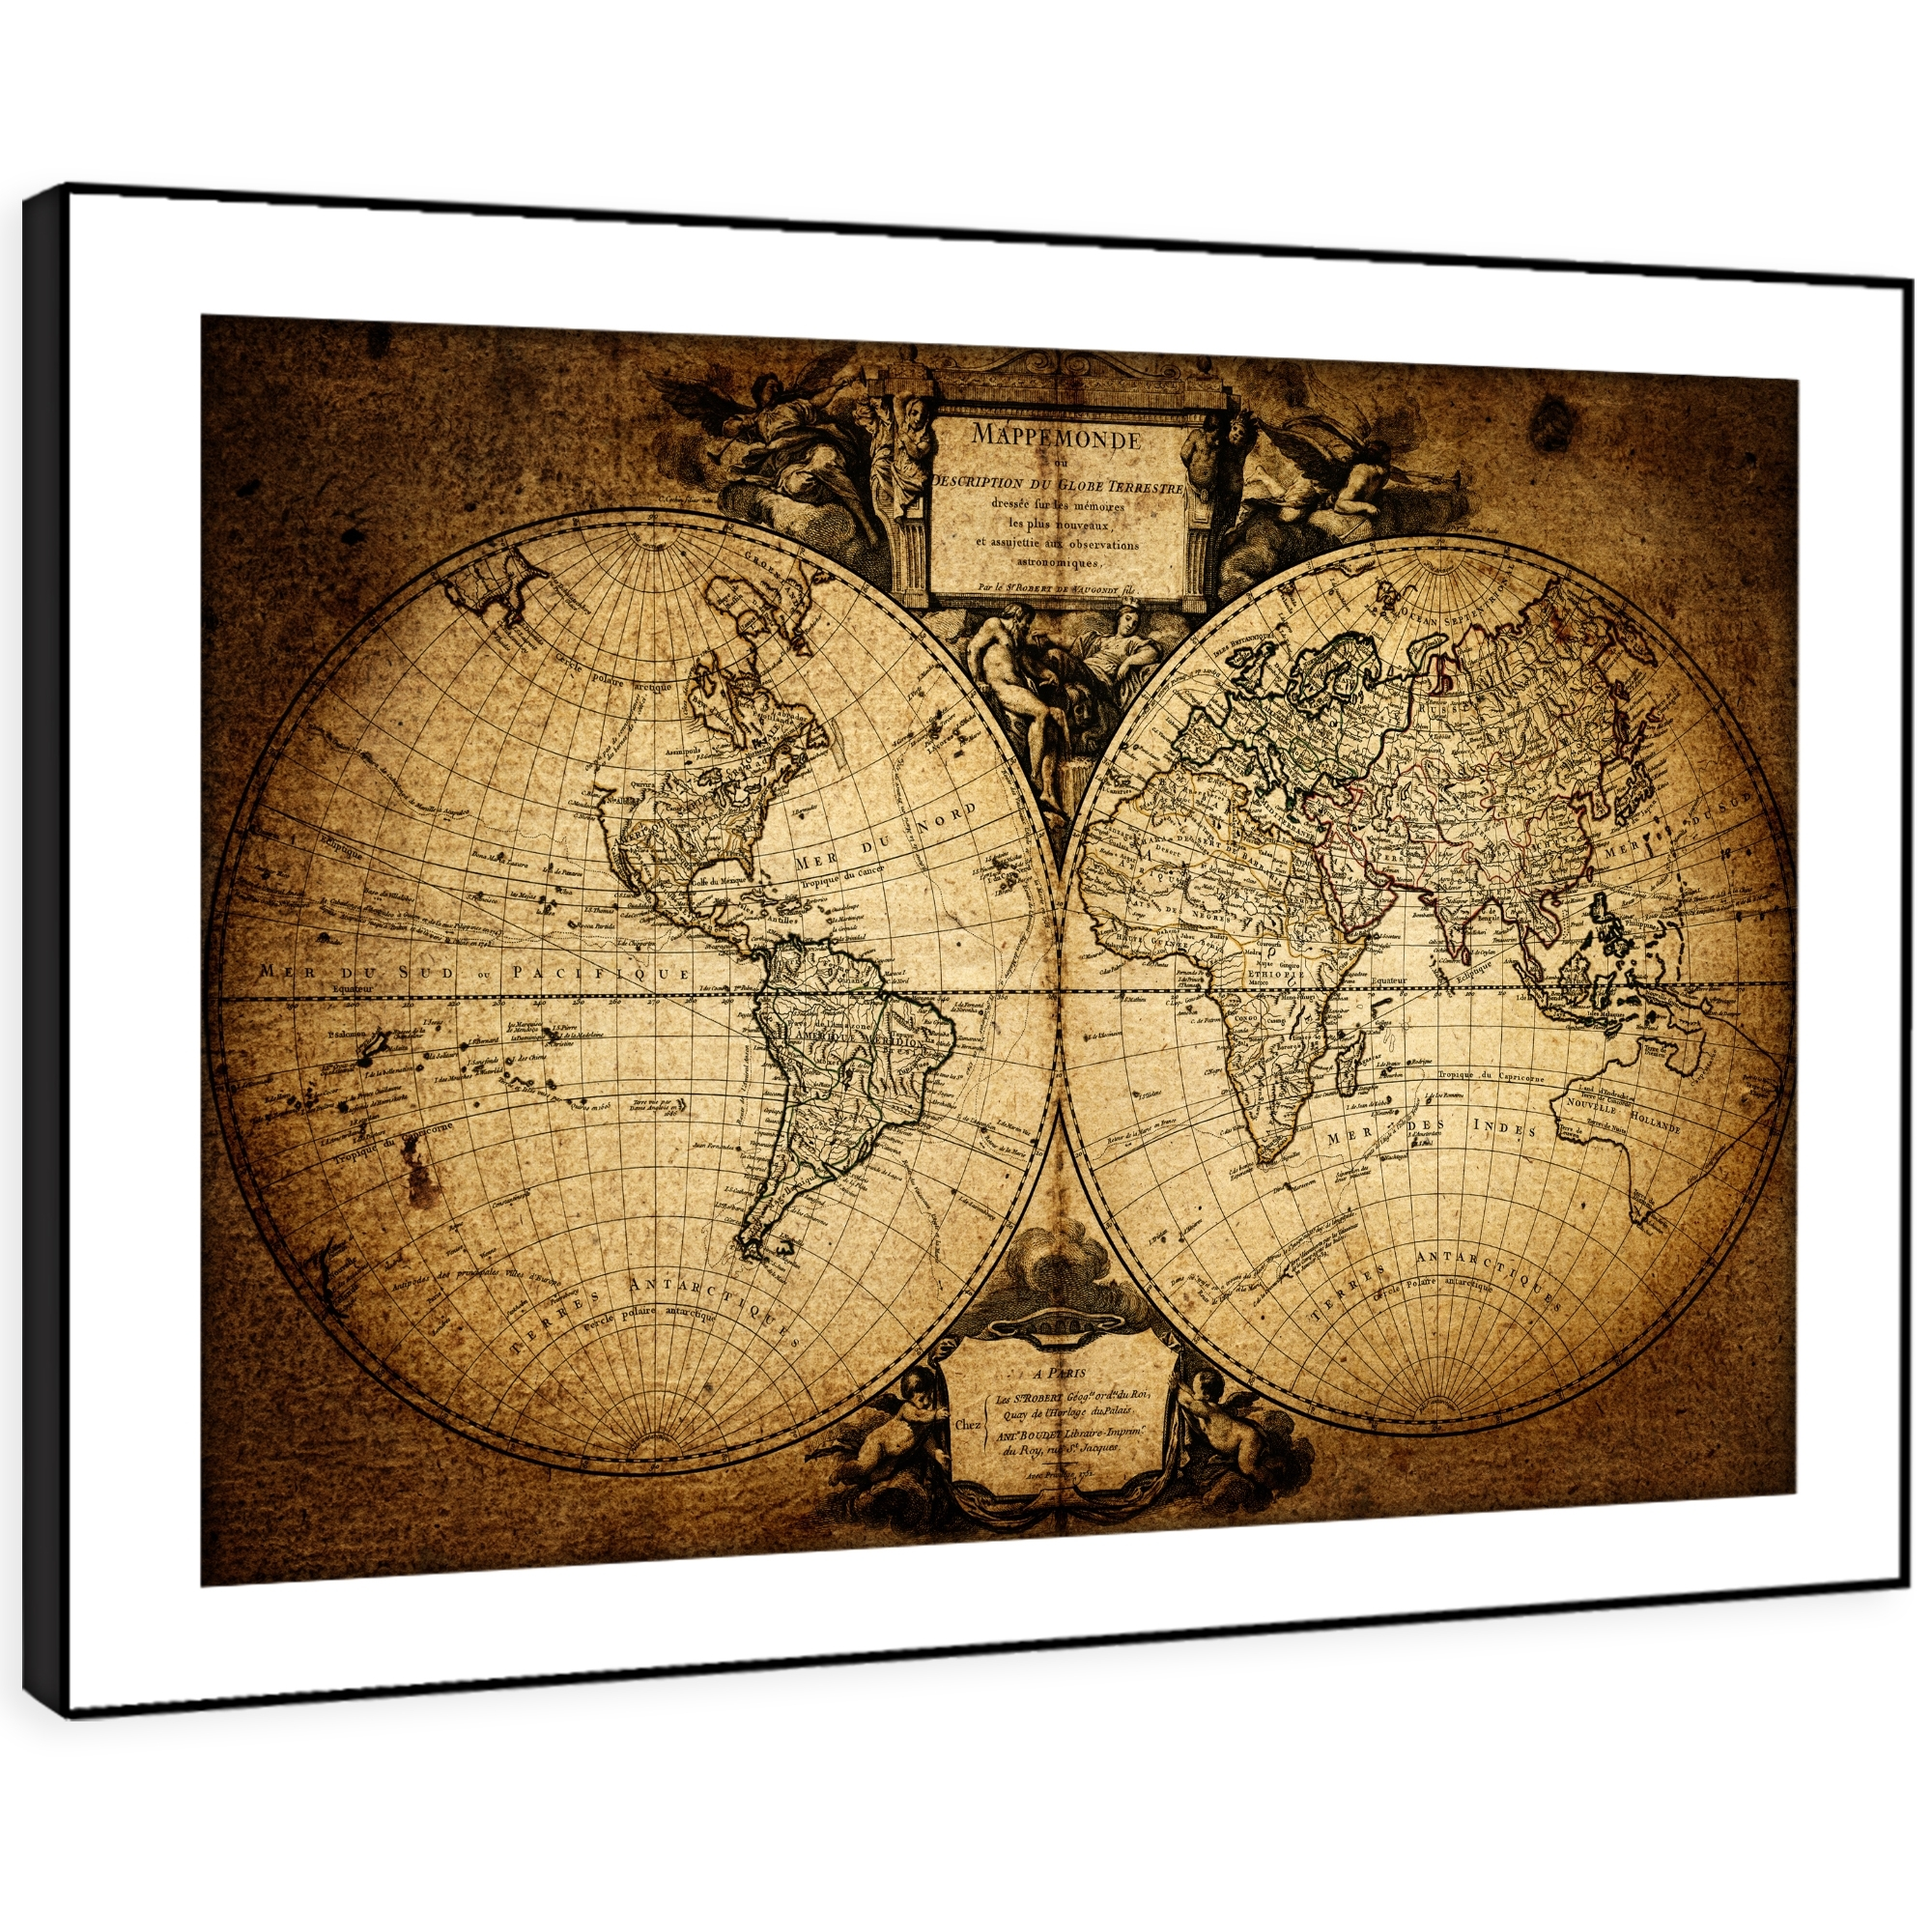 Sc359 Retro Vintage World Map Landscape Framed Wall Art Large With Regard To Best And Newest Framed Wall Art (View 14 of 15)